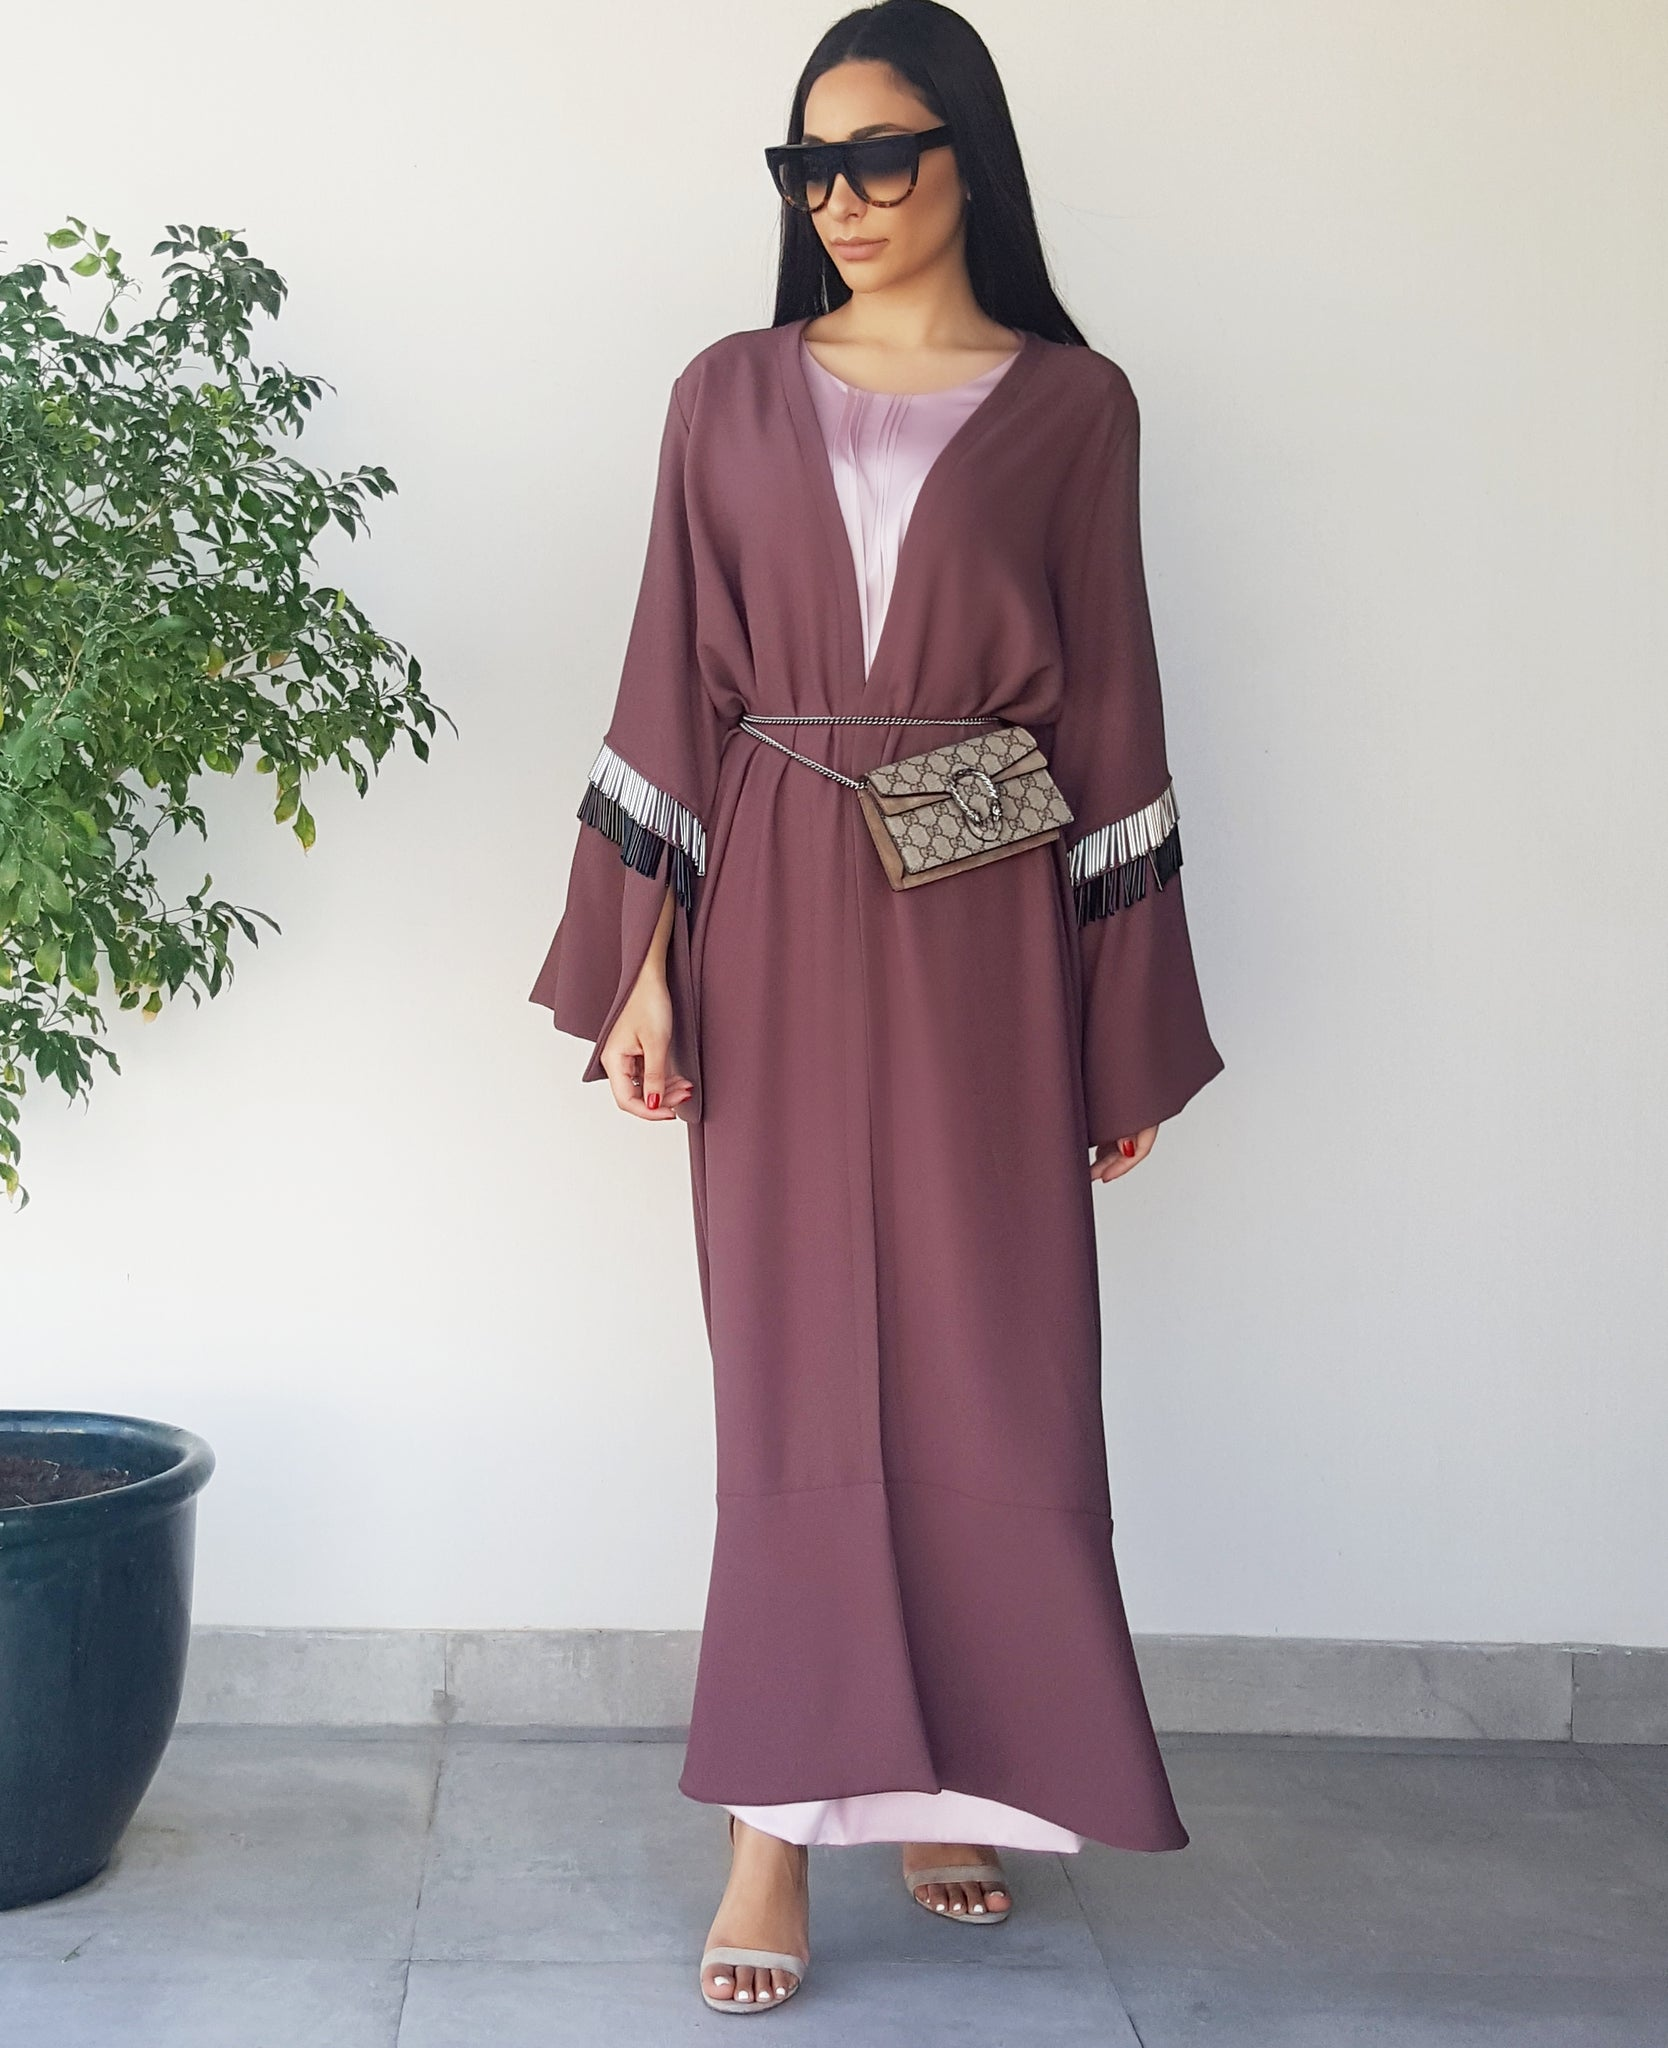 SS18 GRAPE BEADED TASSLE ABAYA